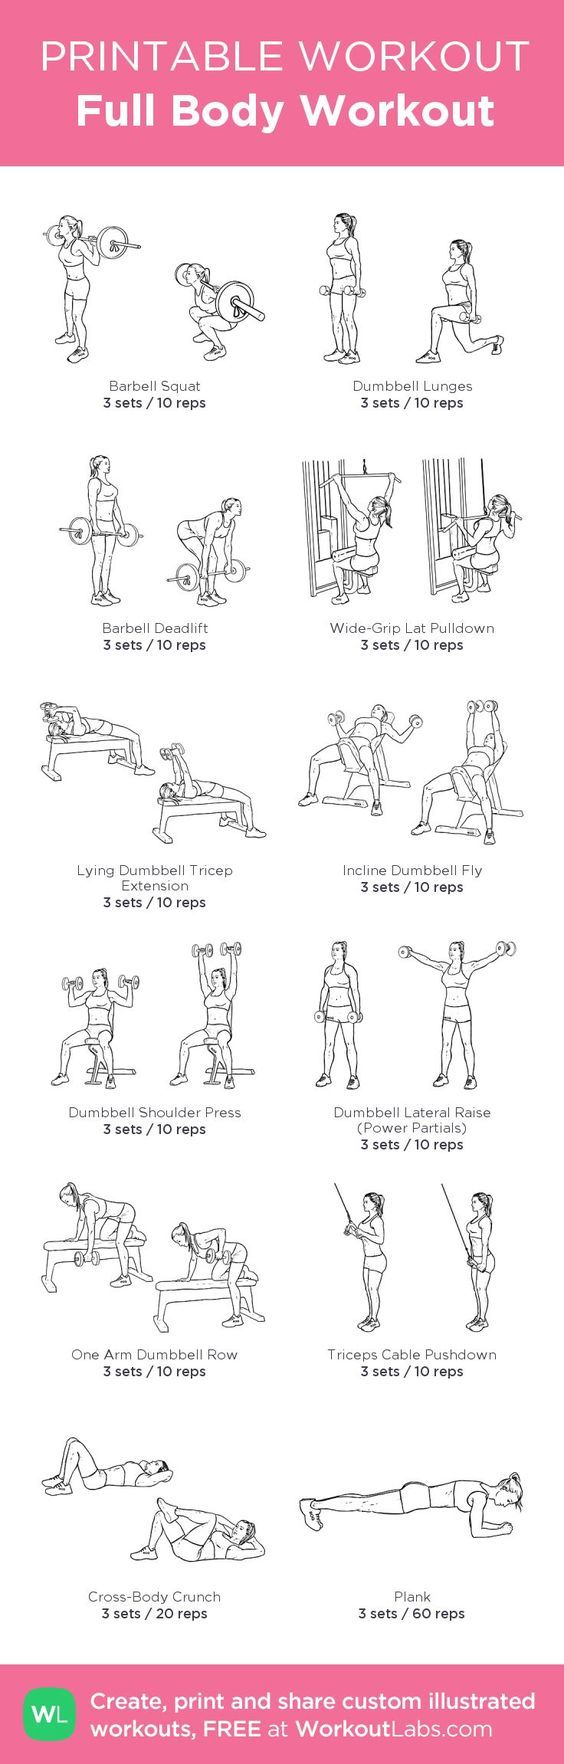 4 Simple Exercises To Get The Perfect Belly In Just 4 Weeks Fitness Body Full Body Workout Workout Labs